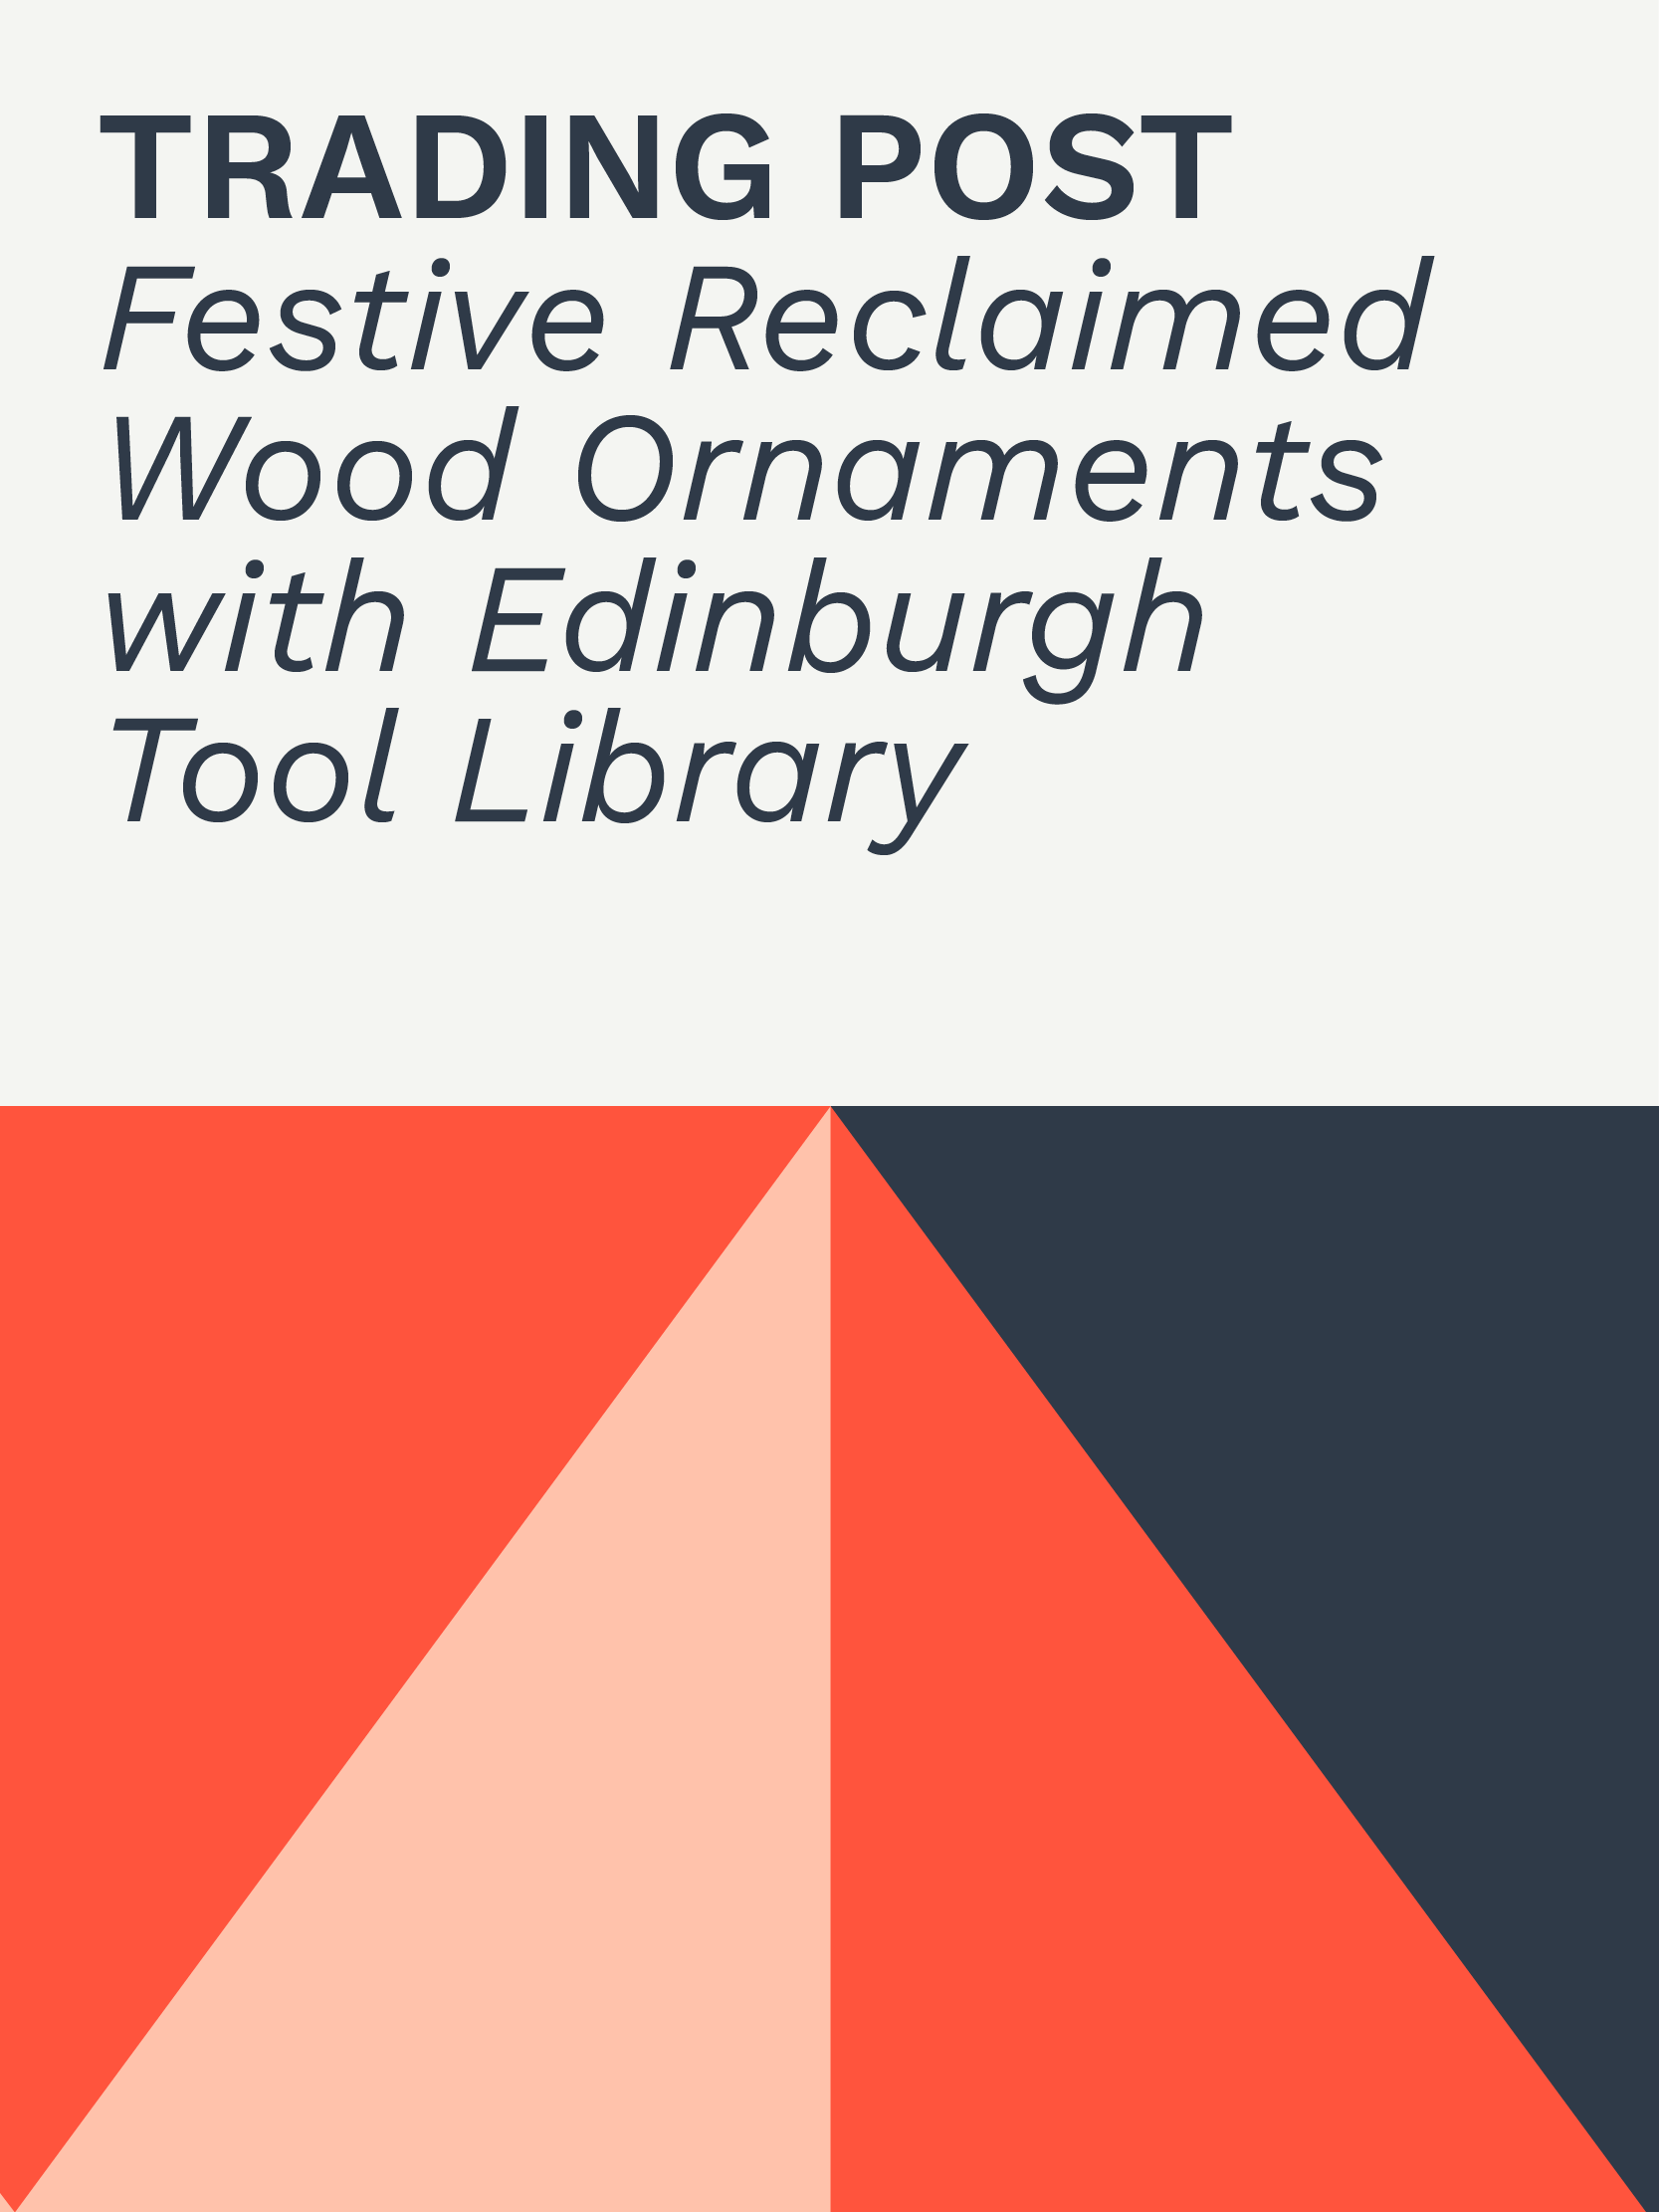 Trading Post | Festive Wooden Ornaments with Edinburgh Tool Library